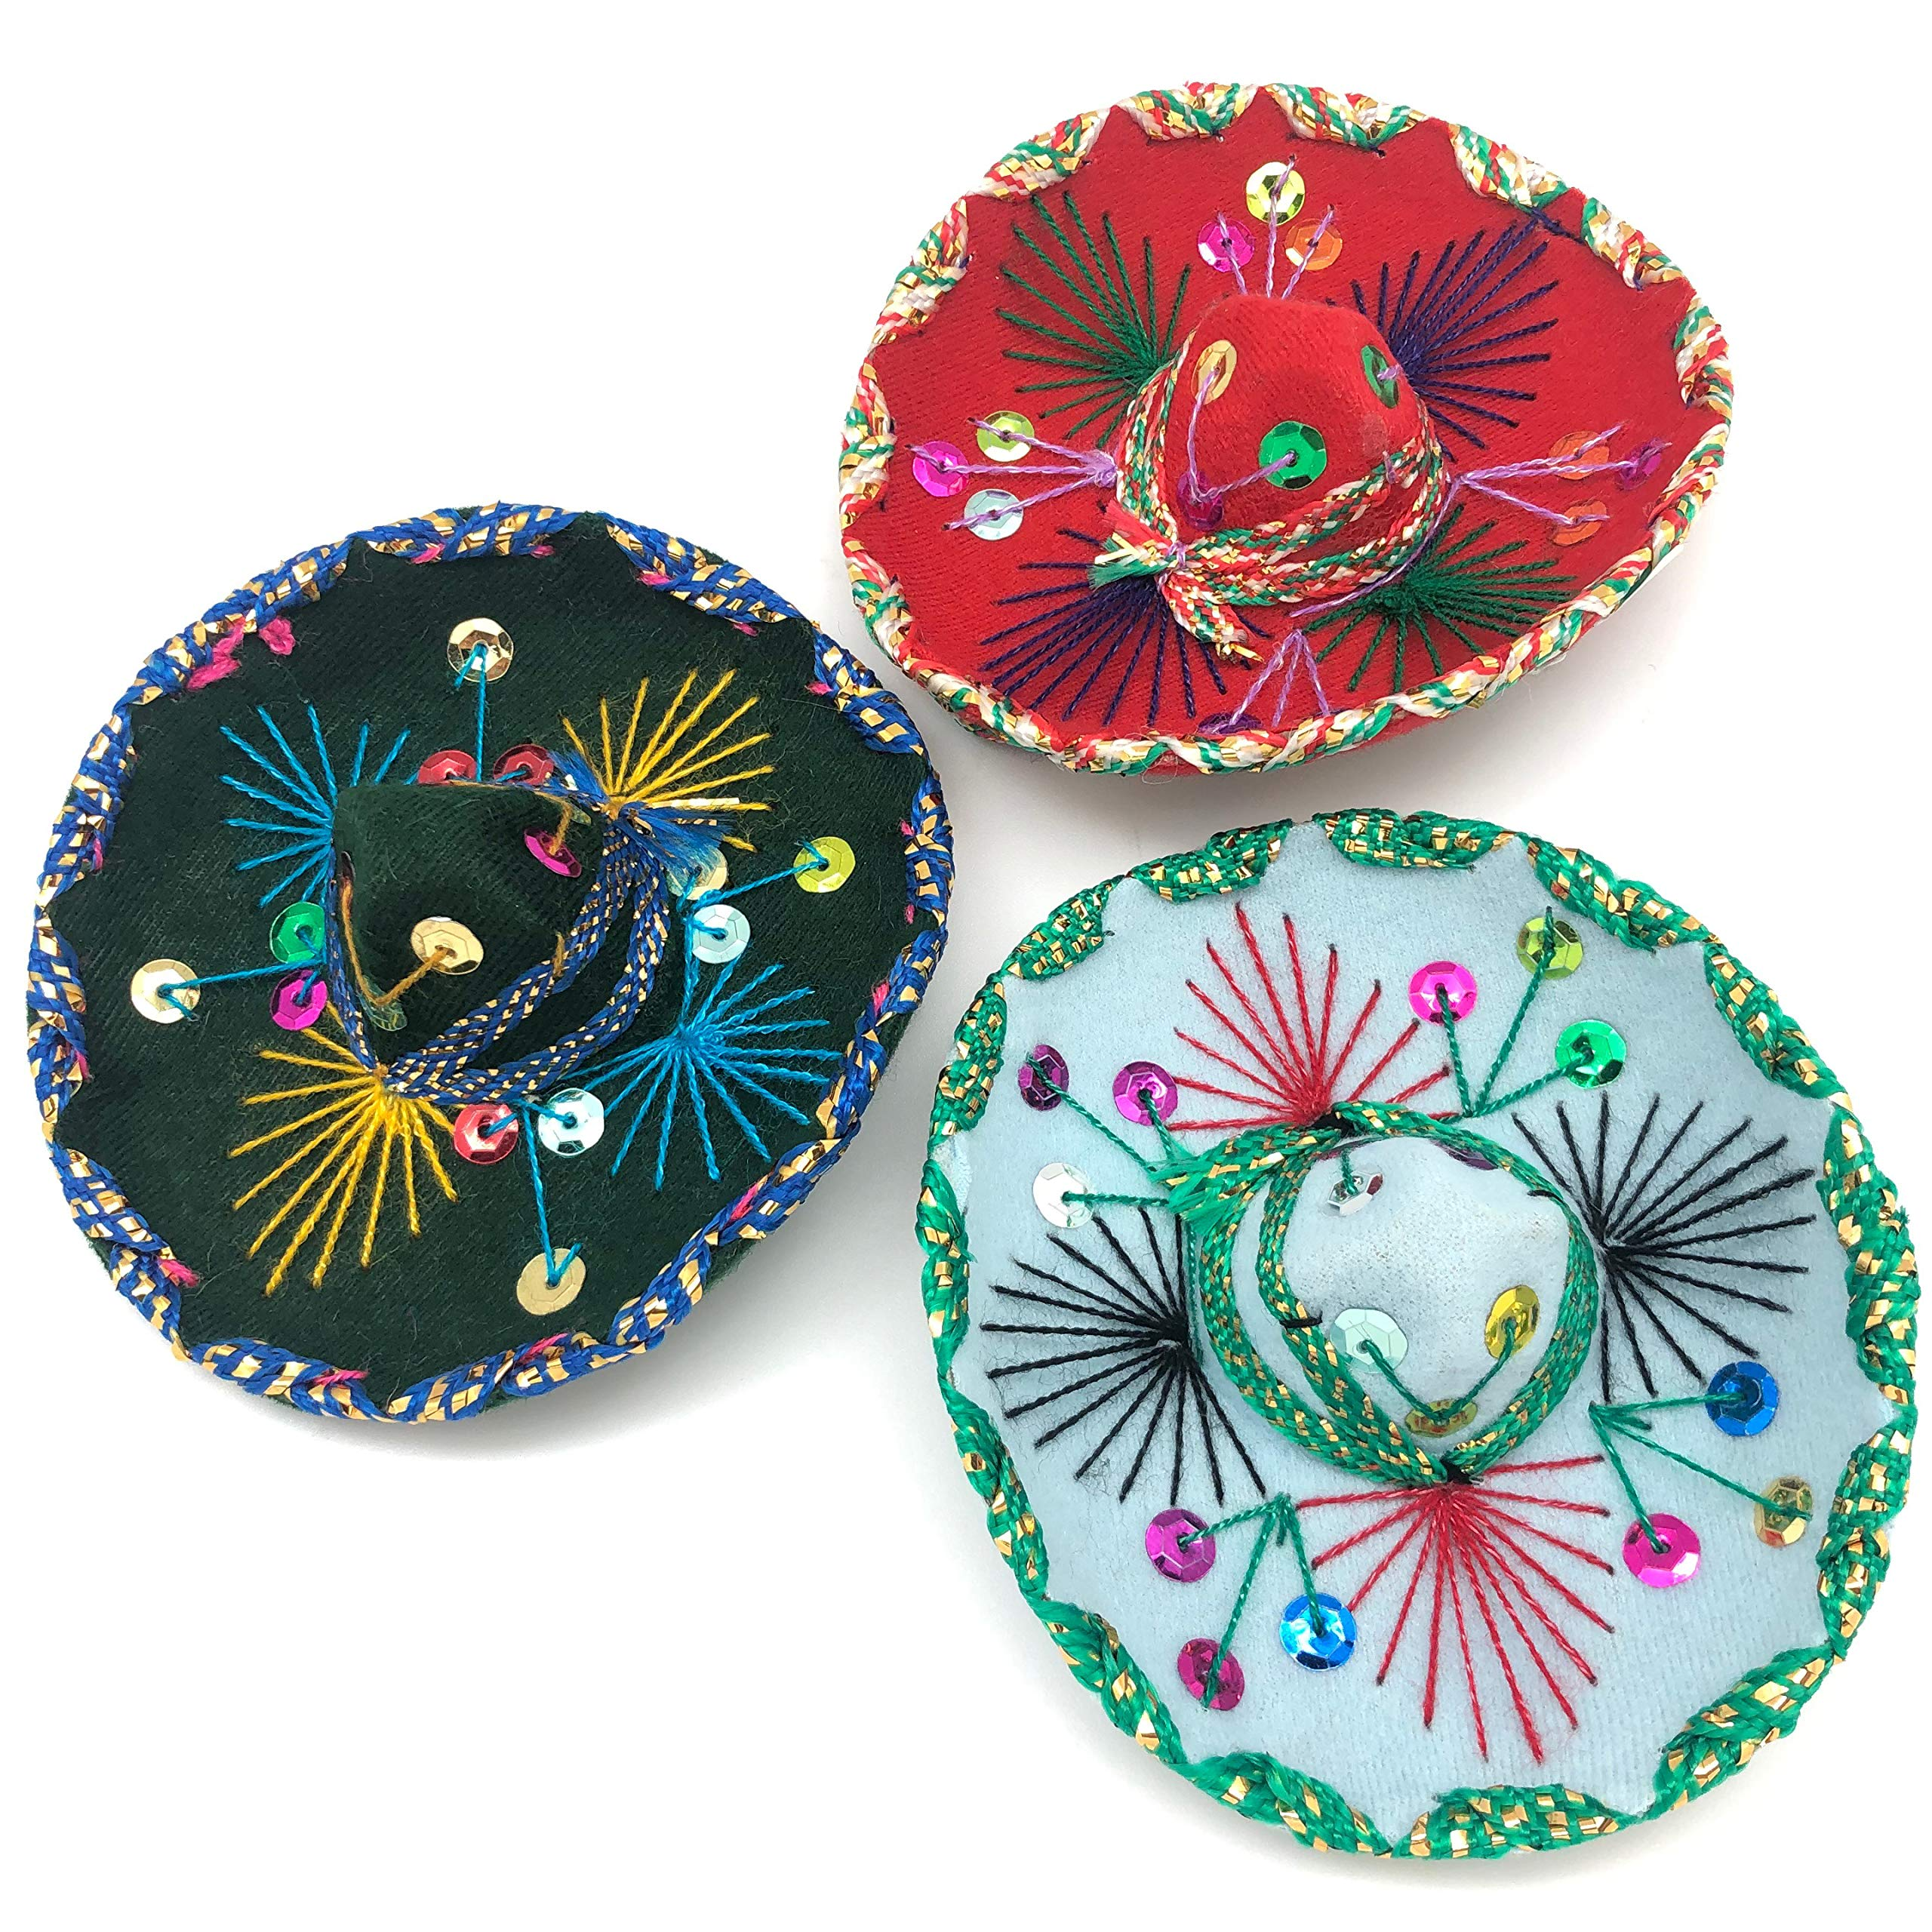 YAJUA Mariachi Mexican Mini Sombrero 5in, for Mexican Themed Party or Small Dog or Cat Hat (Assorted Set of 3) by Yajua